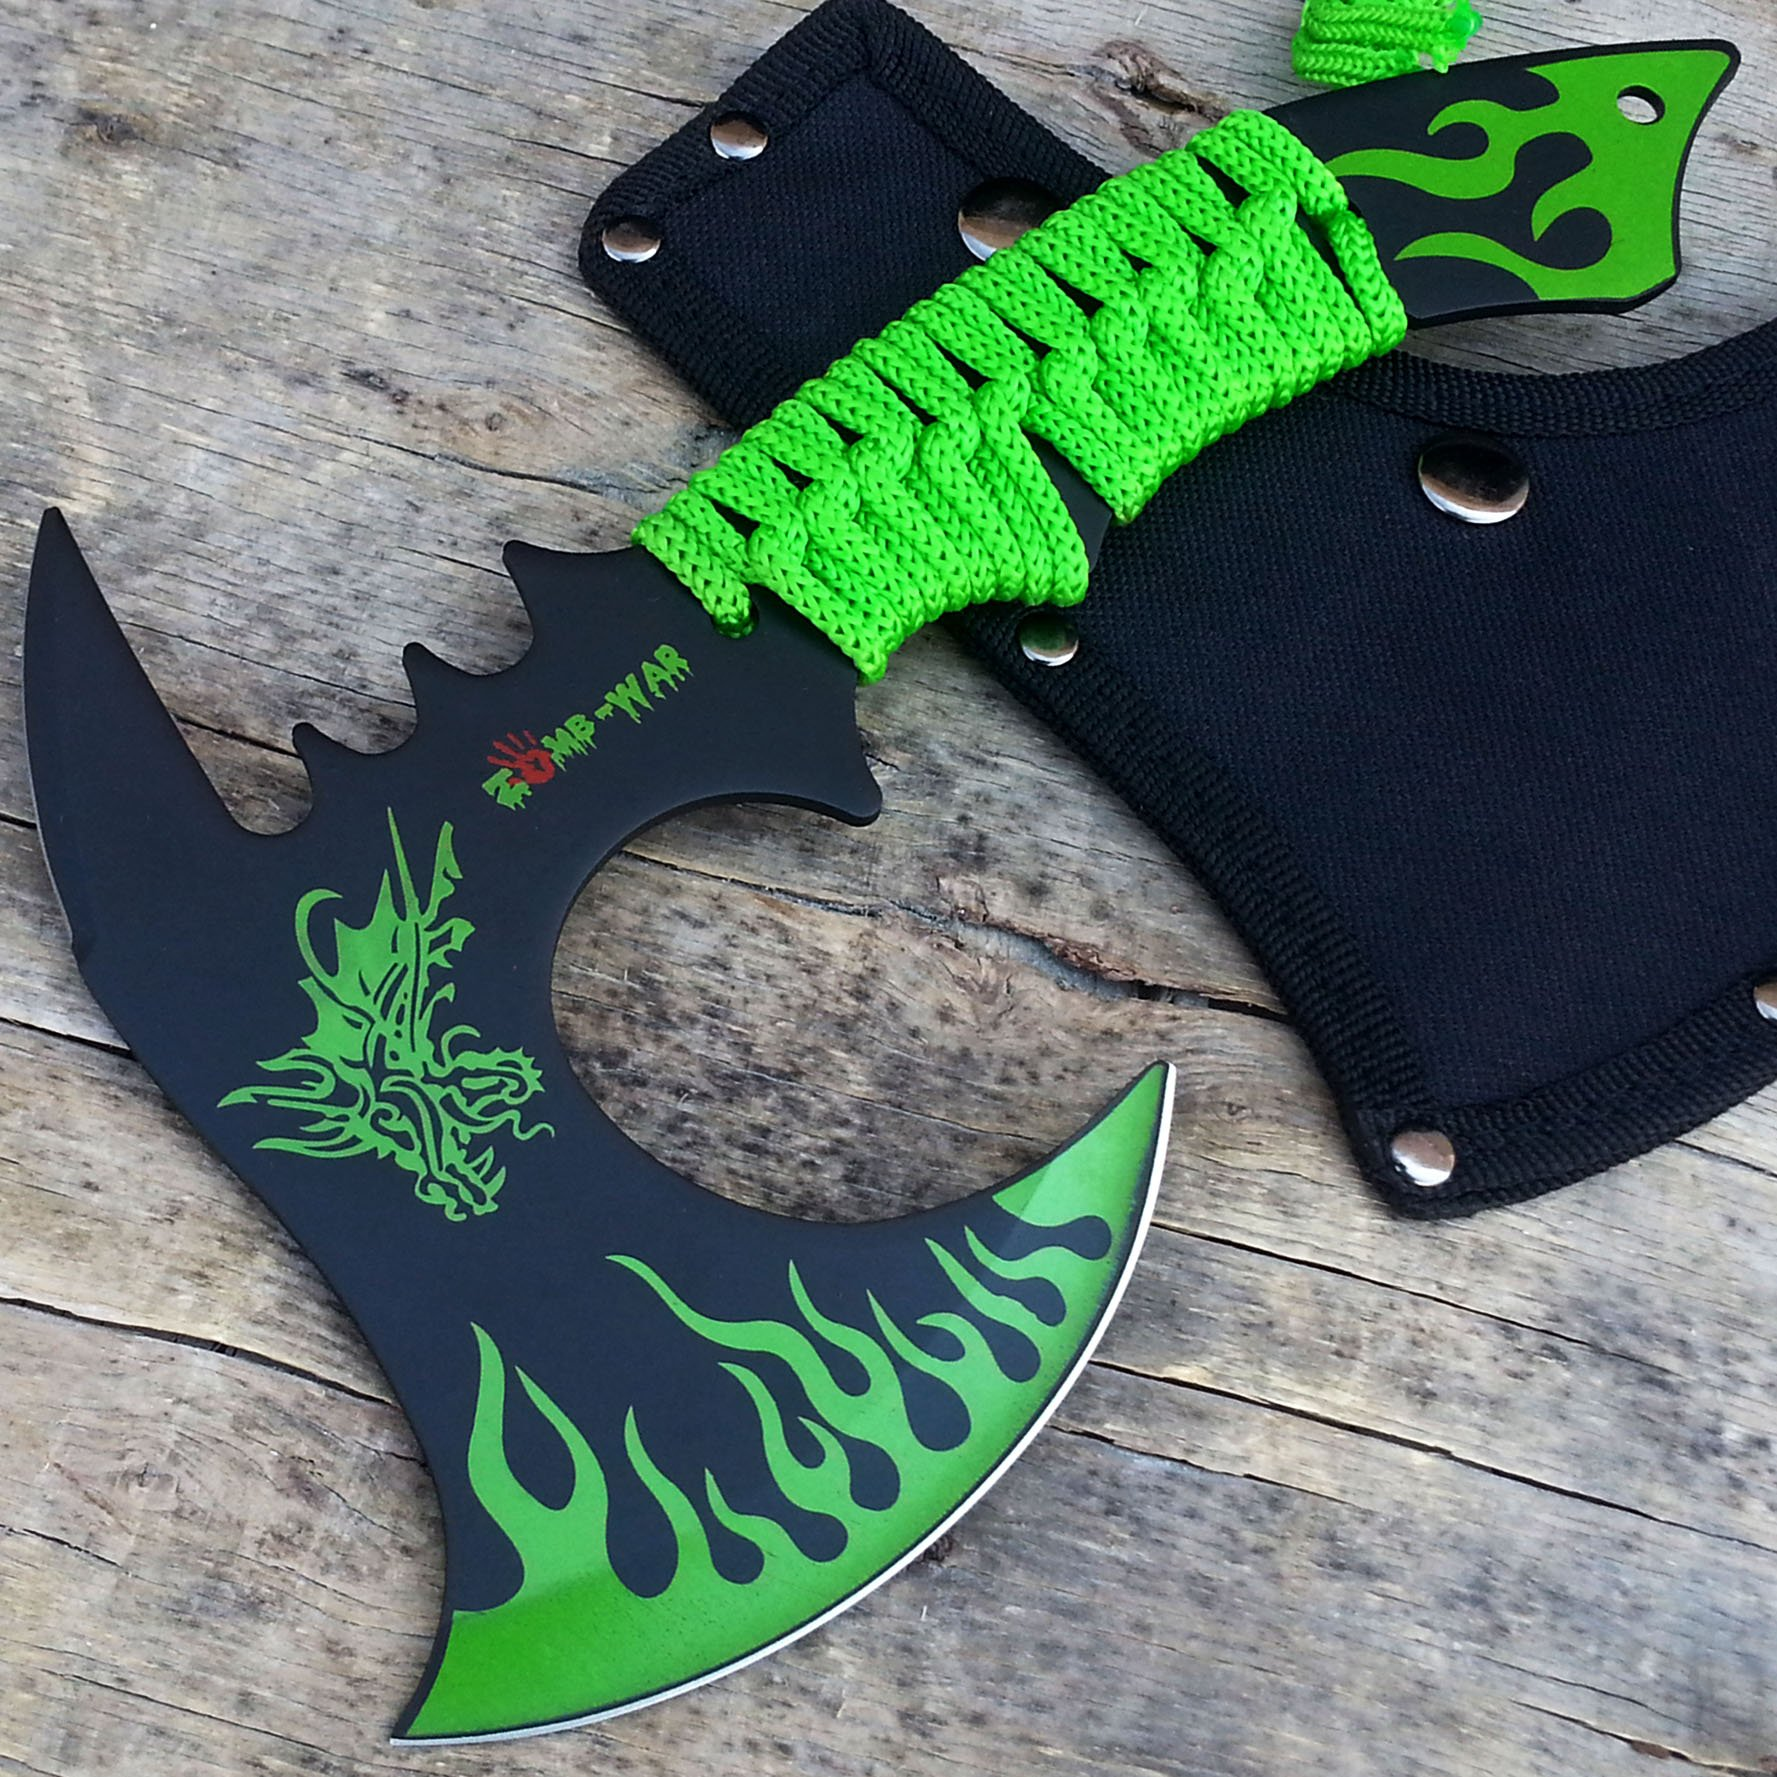 HUNT-DOWN 11'' Green Dragon Axe Outdoor Hunting Camping Survival Steel Axe   with Holt Multi Tool Key Chain